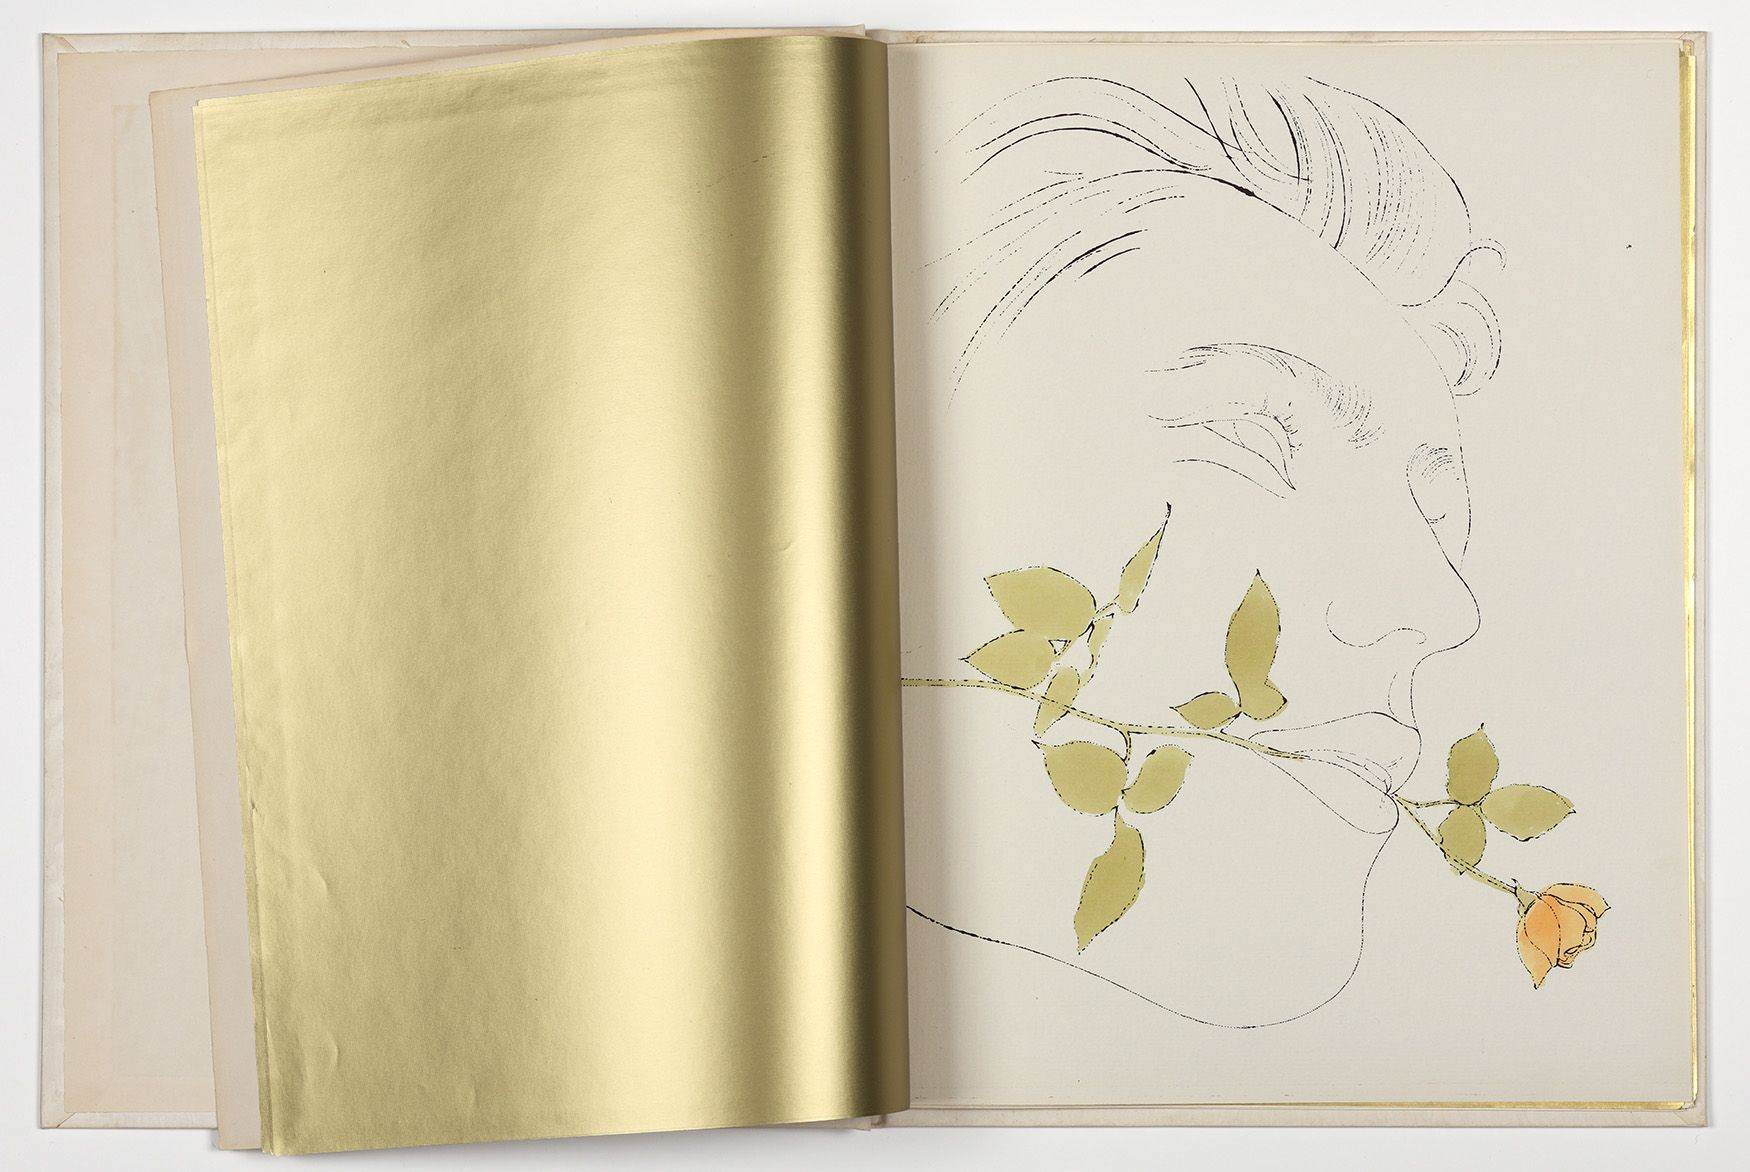 Andy Warhol, A Gold Book, 1957 ©The Andy Warhol Foundation for the Visual Arts, Inc., Cortesía: The Andy Warhol Museum, Pittsburgh